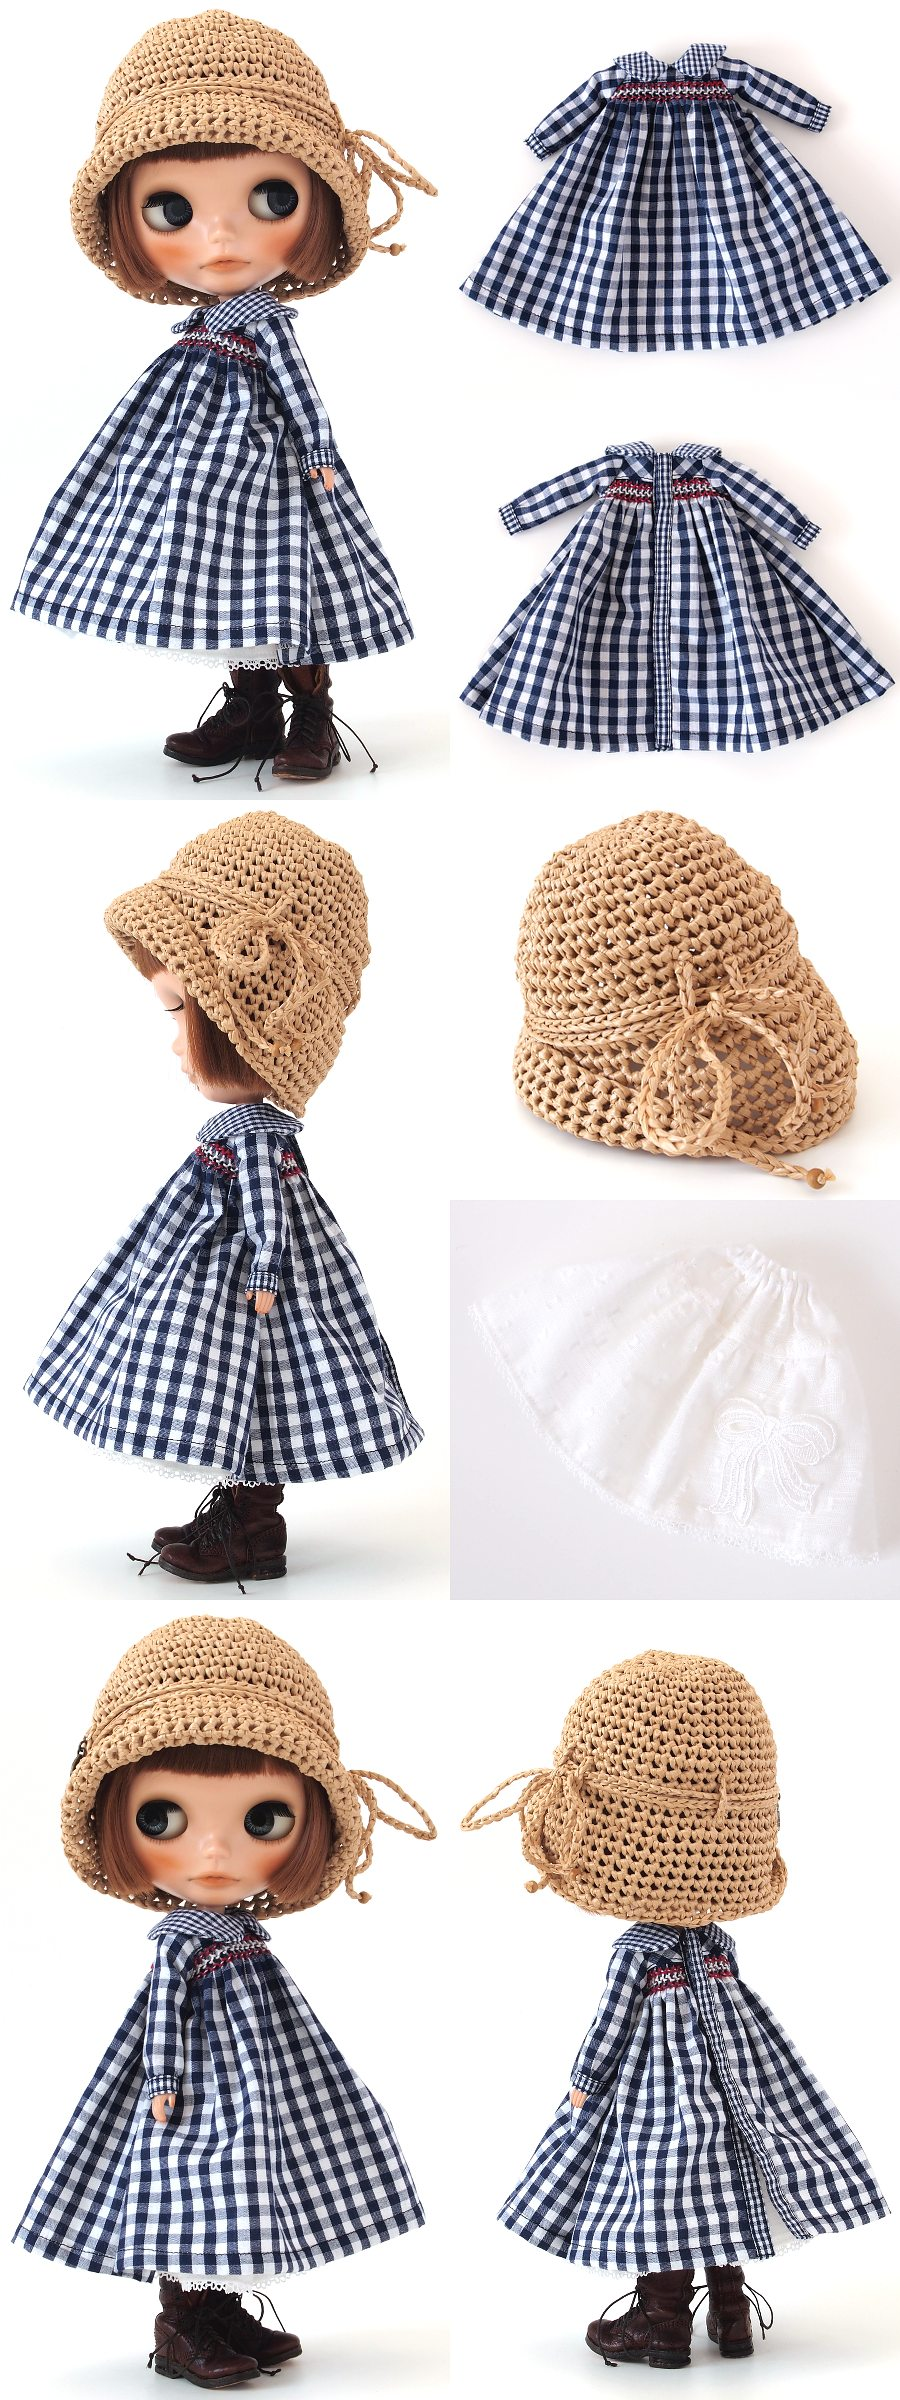 ** Blythe outfit ** Lucalily 388**_d0217189_23222333.jpg